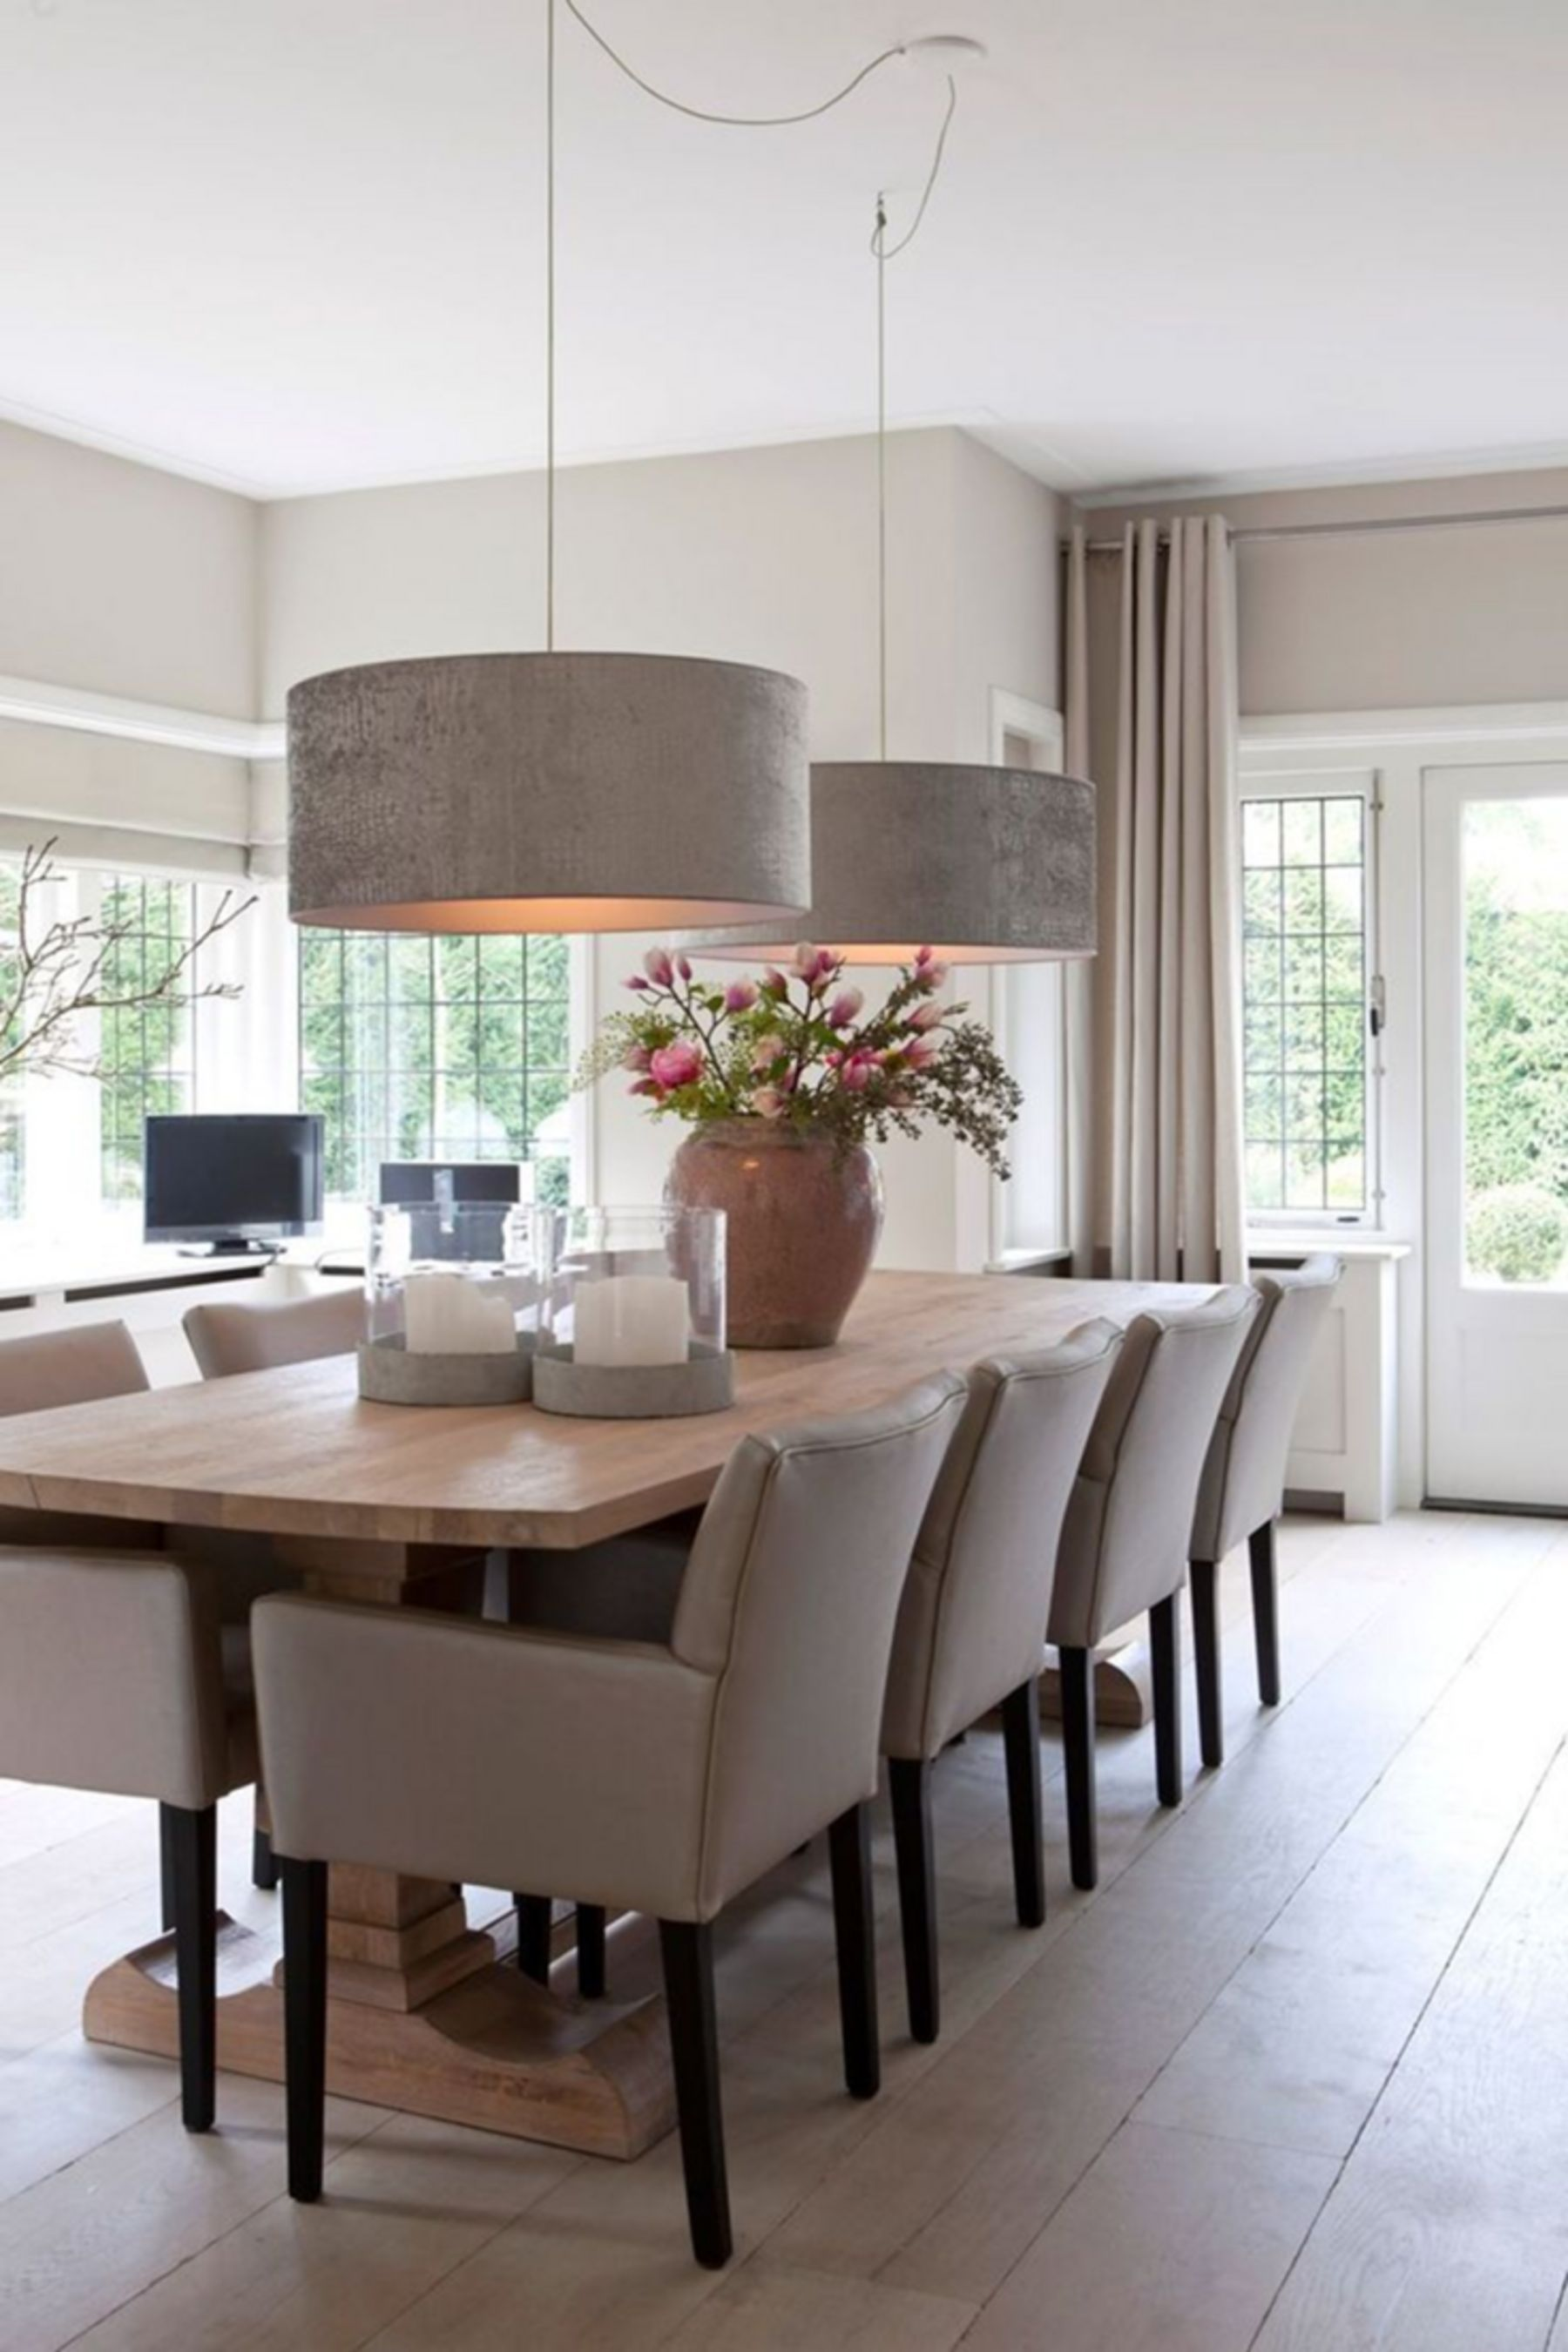 10 Awesome Dining Room Design Ideas With Low Budget With Images